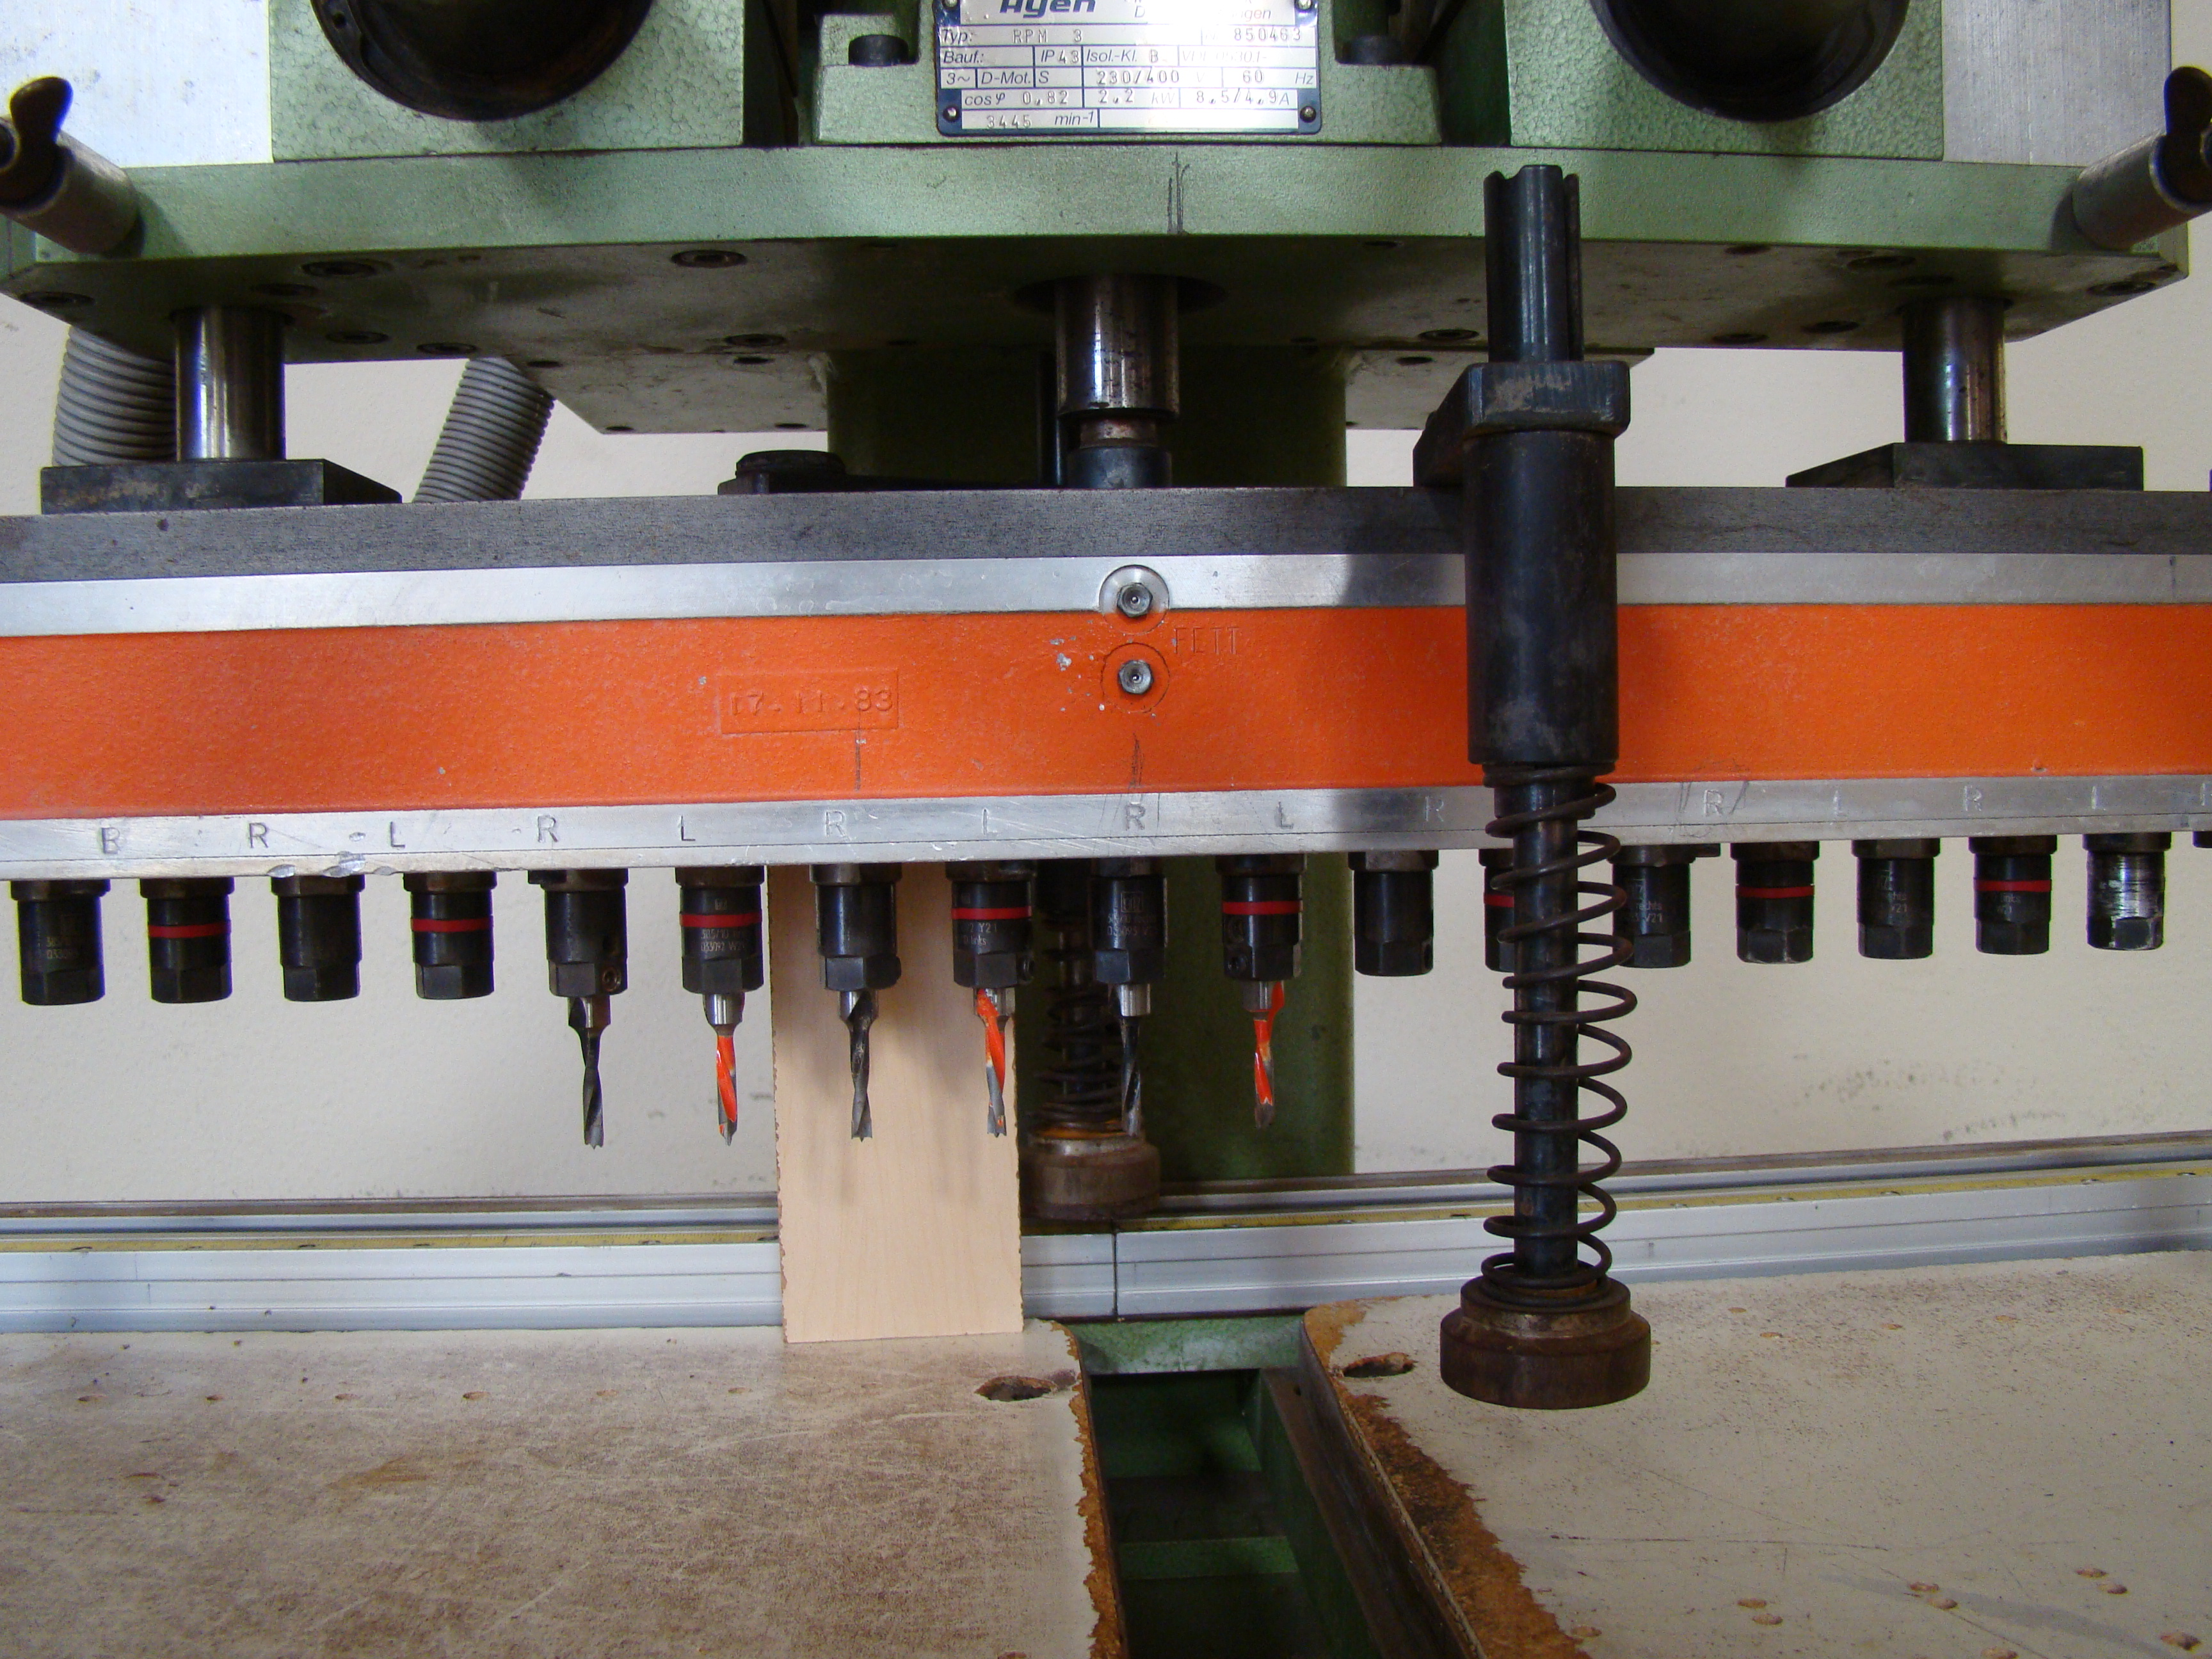 Ayen 21 Spindle Pneumatic Line Boring Machine with foot pedal, 230/460 Volt 3PH - Image 5 of 9